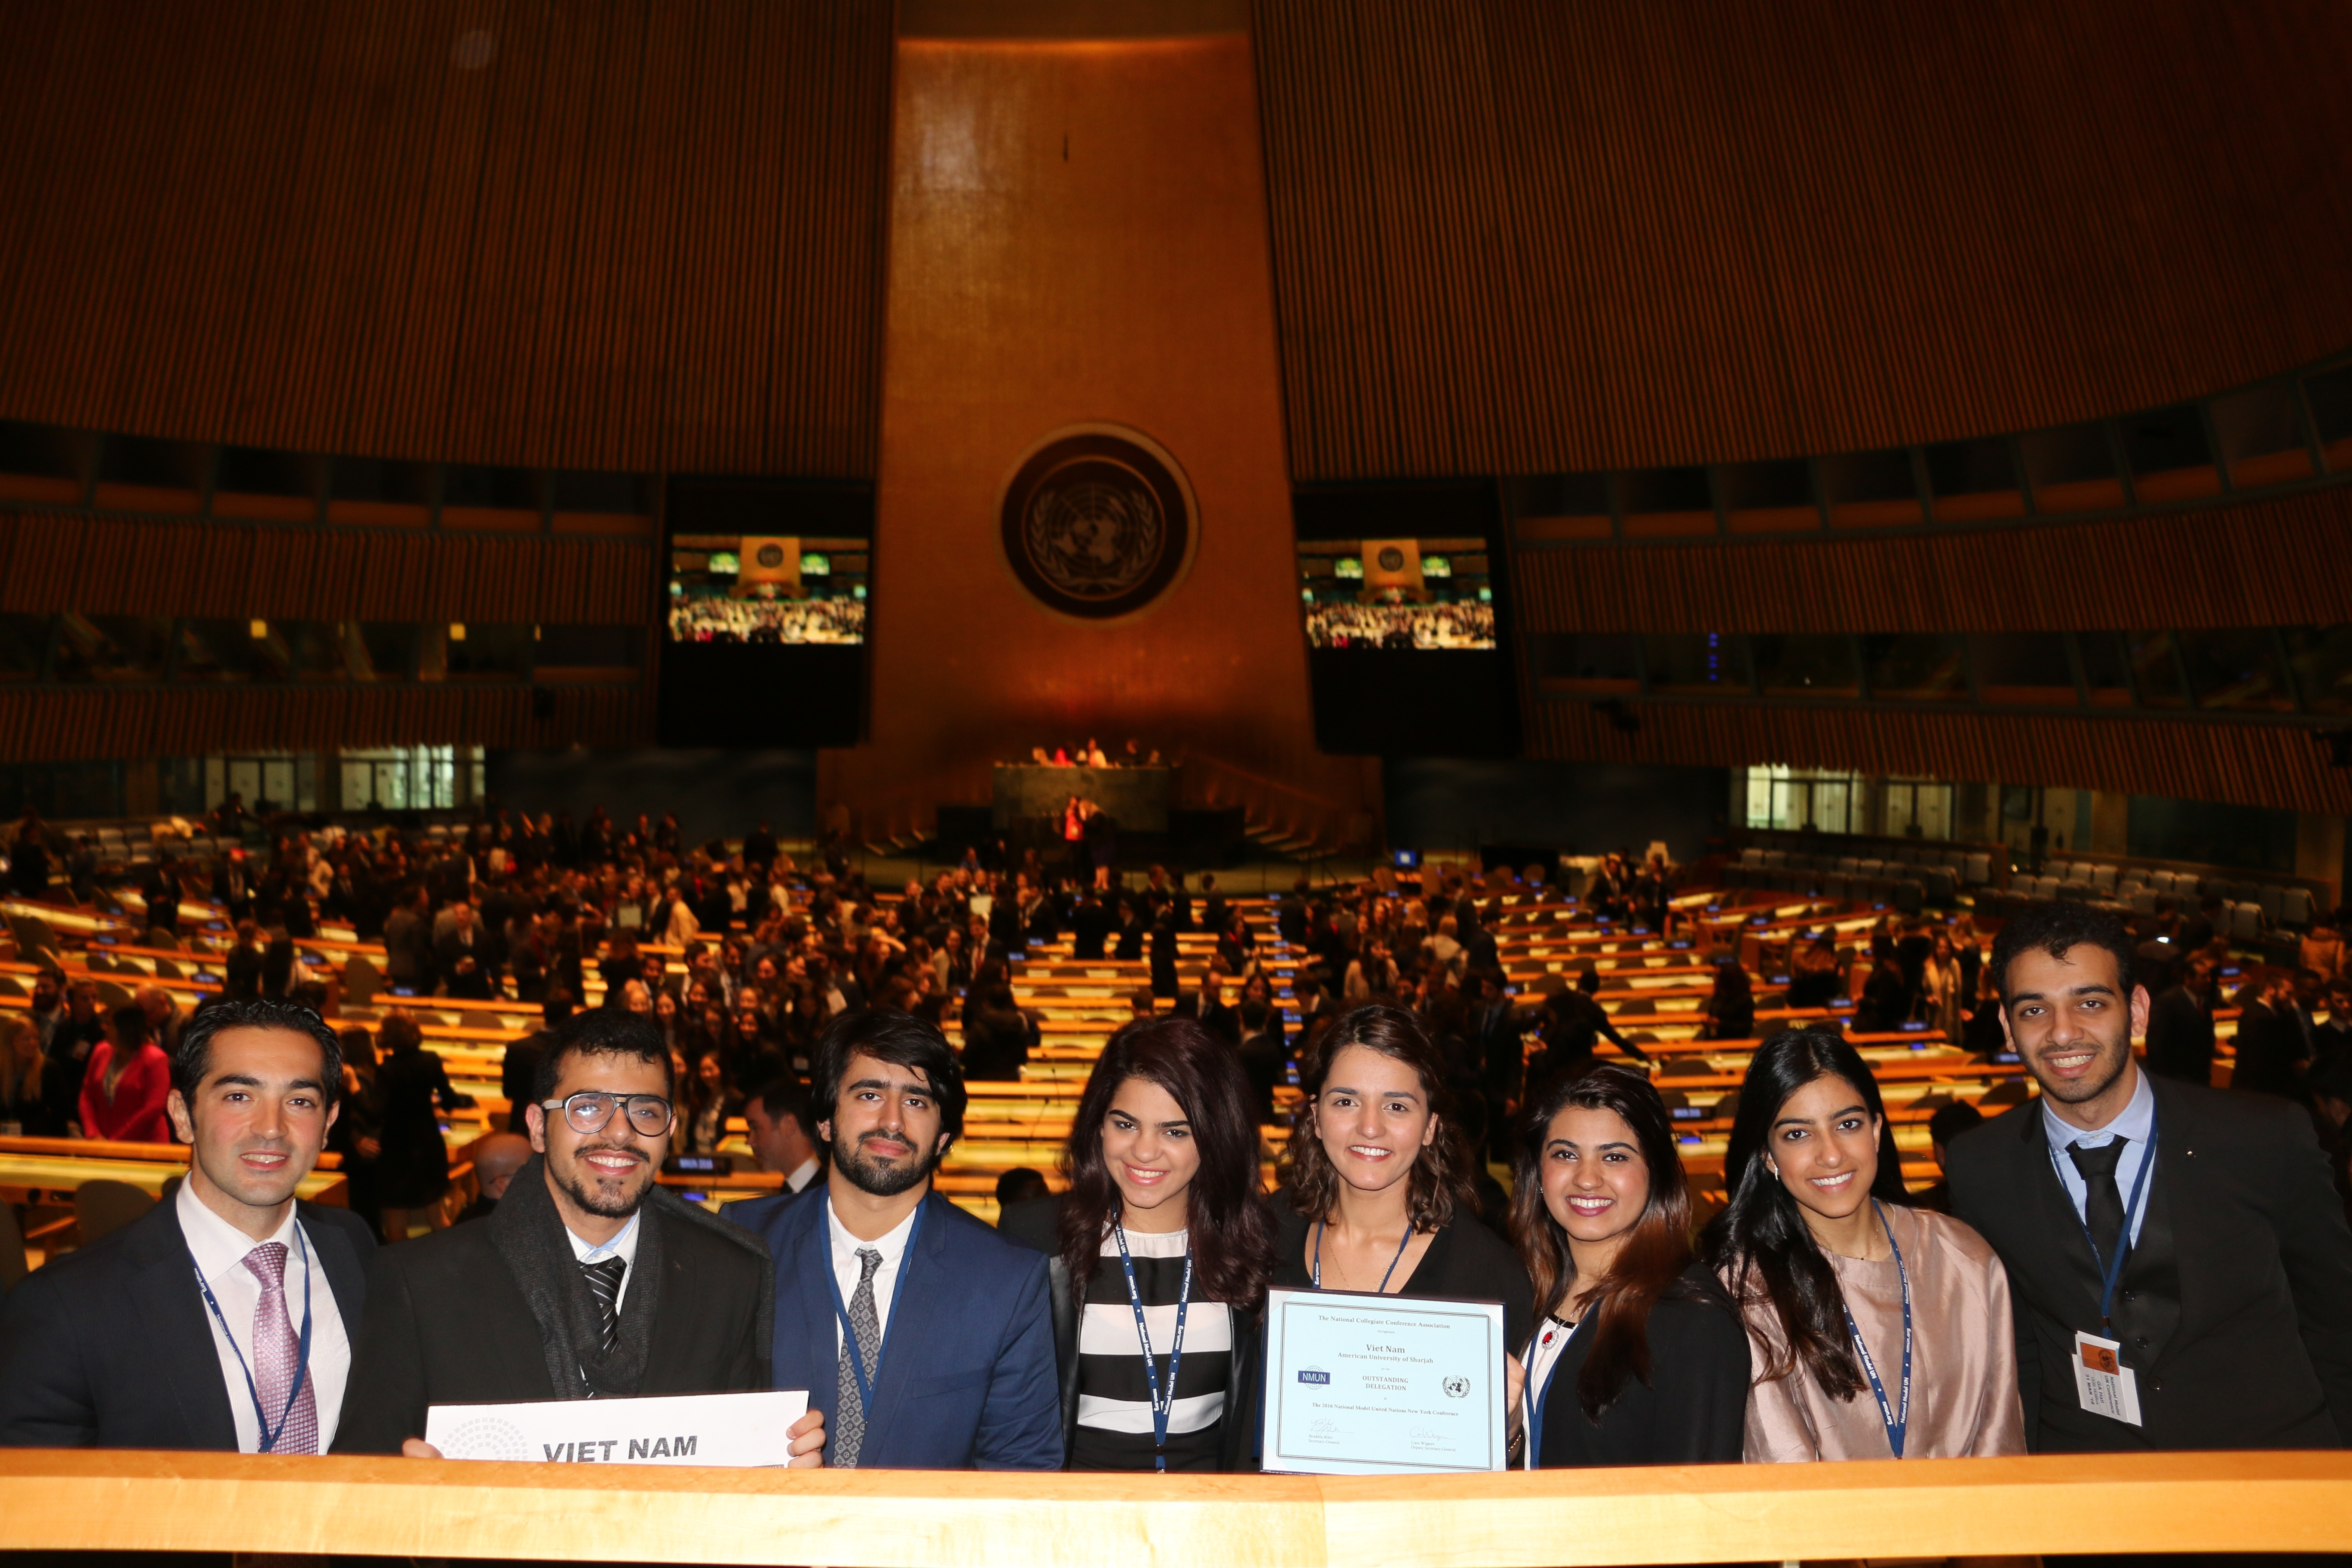 American_University_of_Sharjah_NMUN_1.jpg